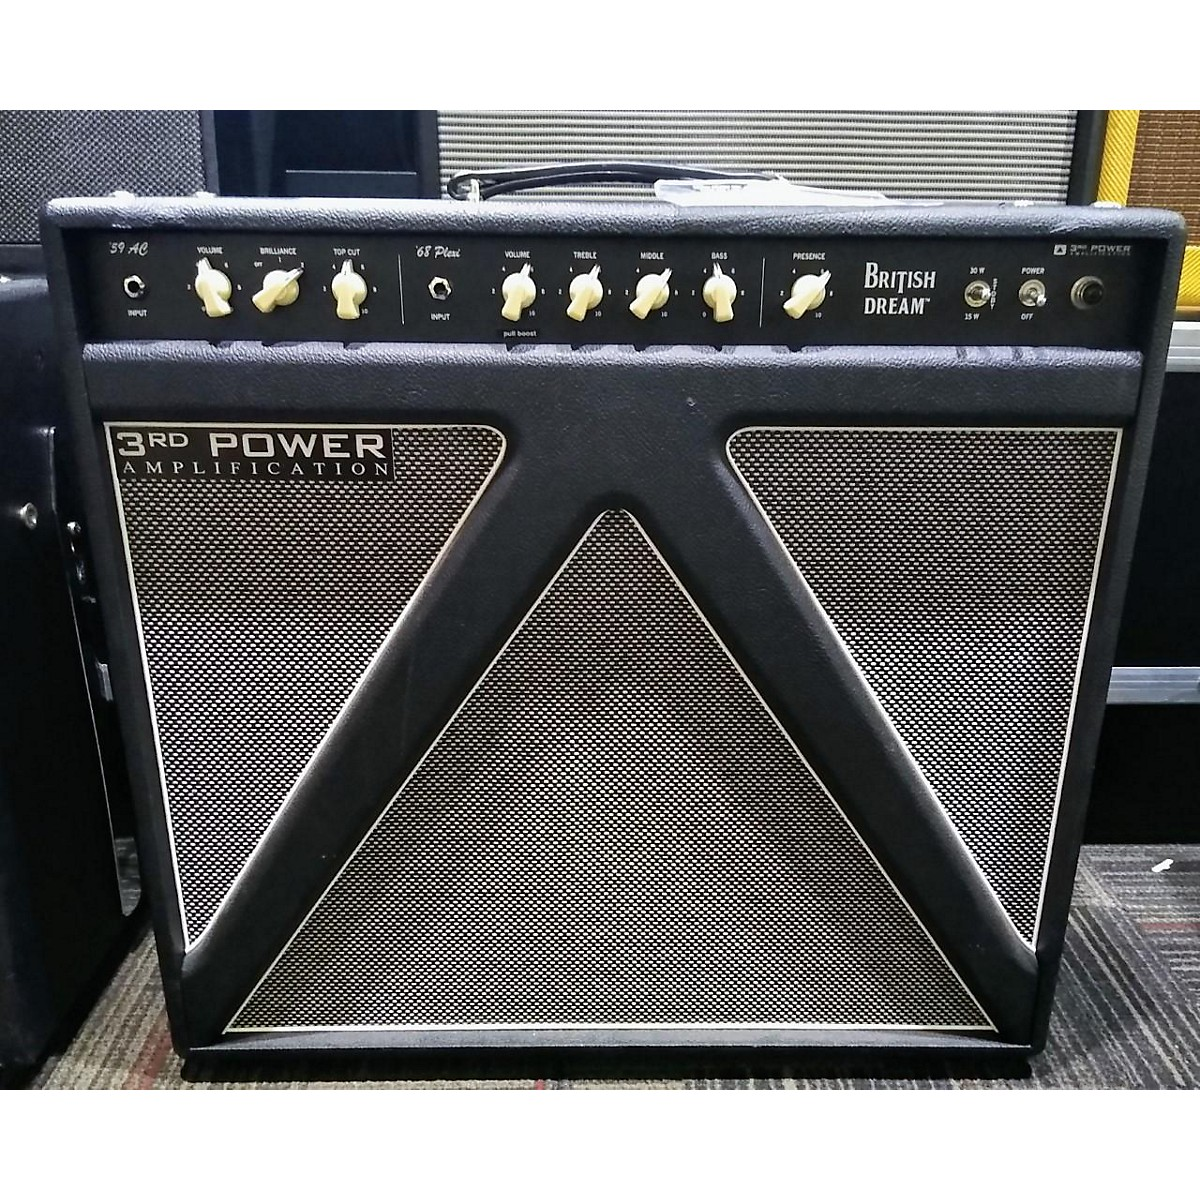 3rd Power Amps British Dream Tube Guitar Combo Amp